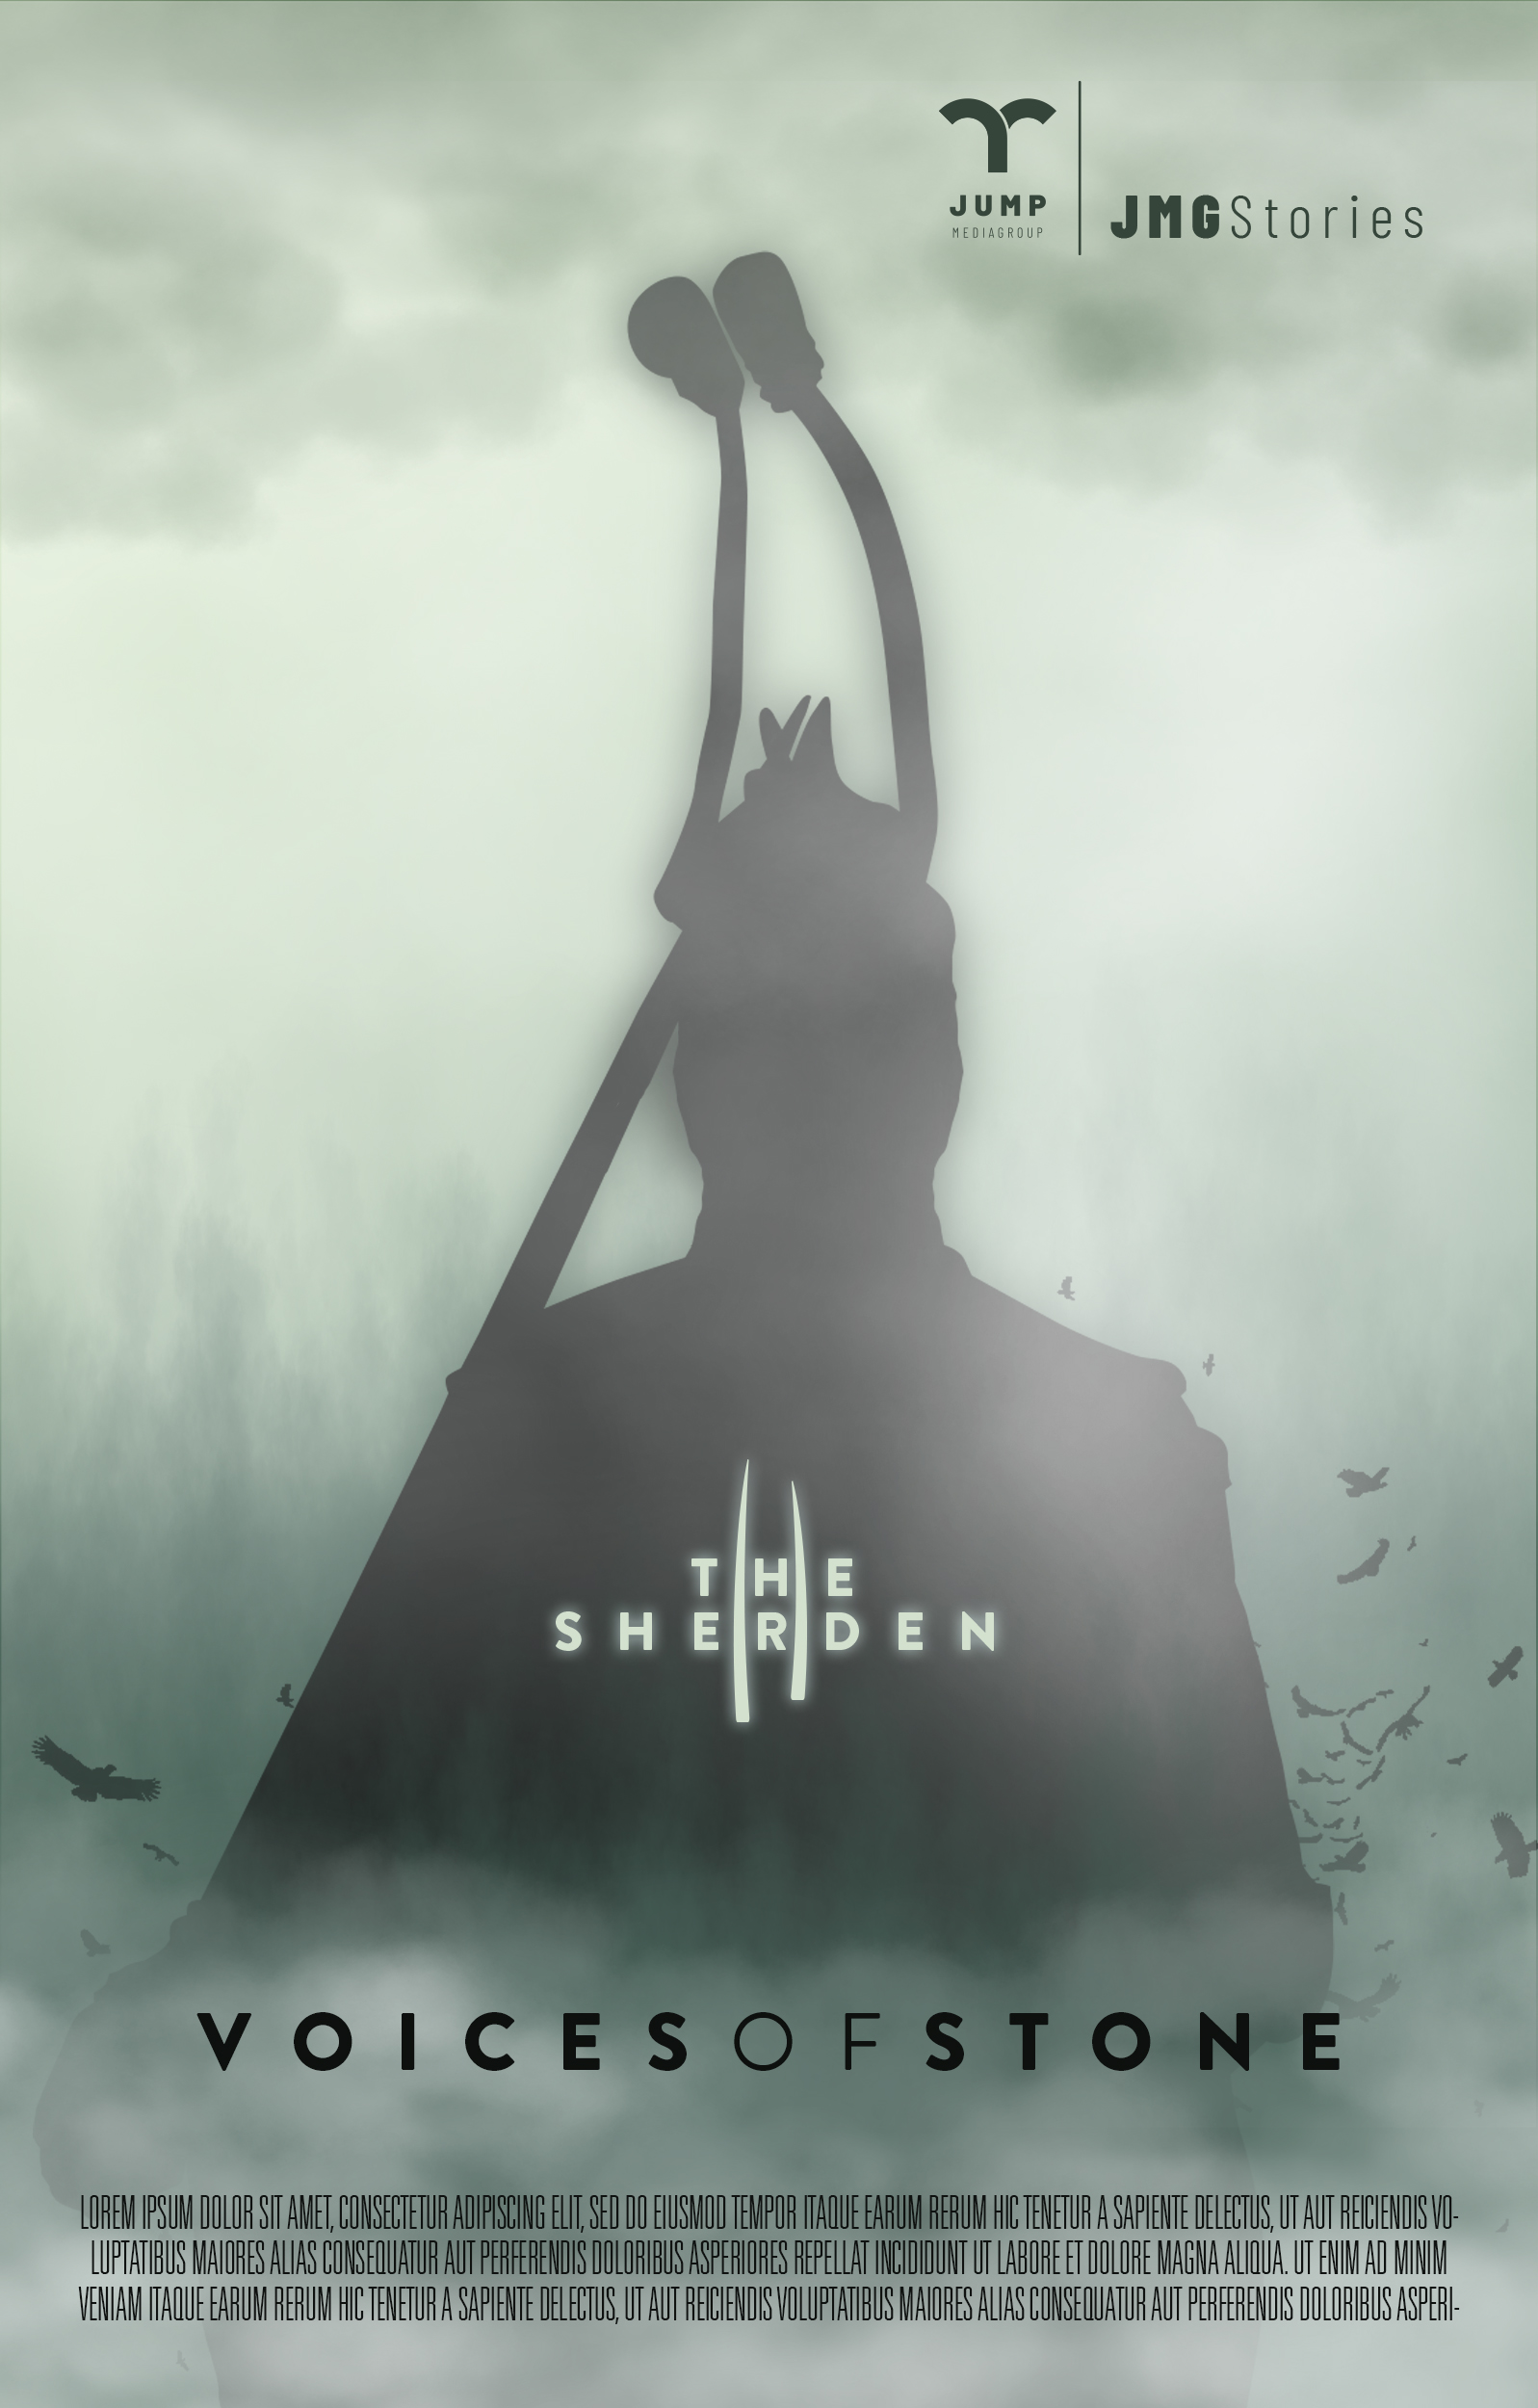 The Sheridan - Voices of stone